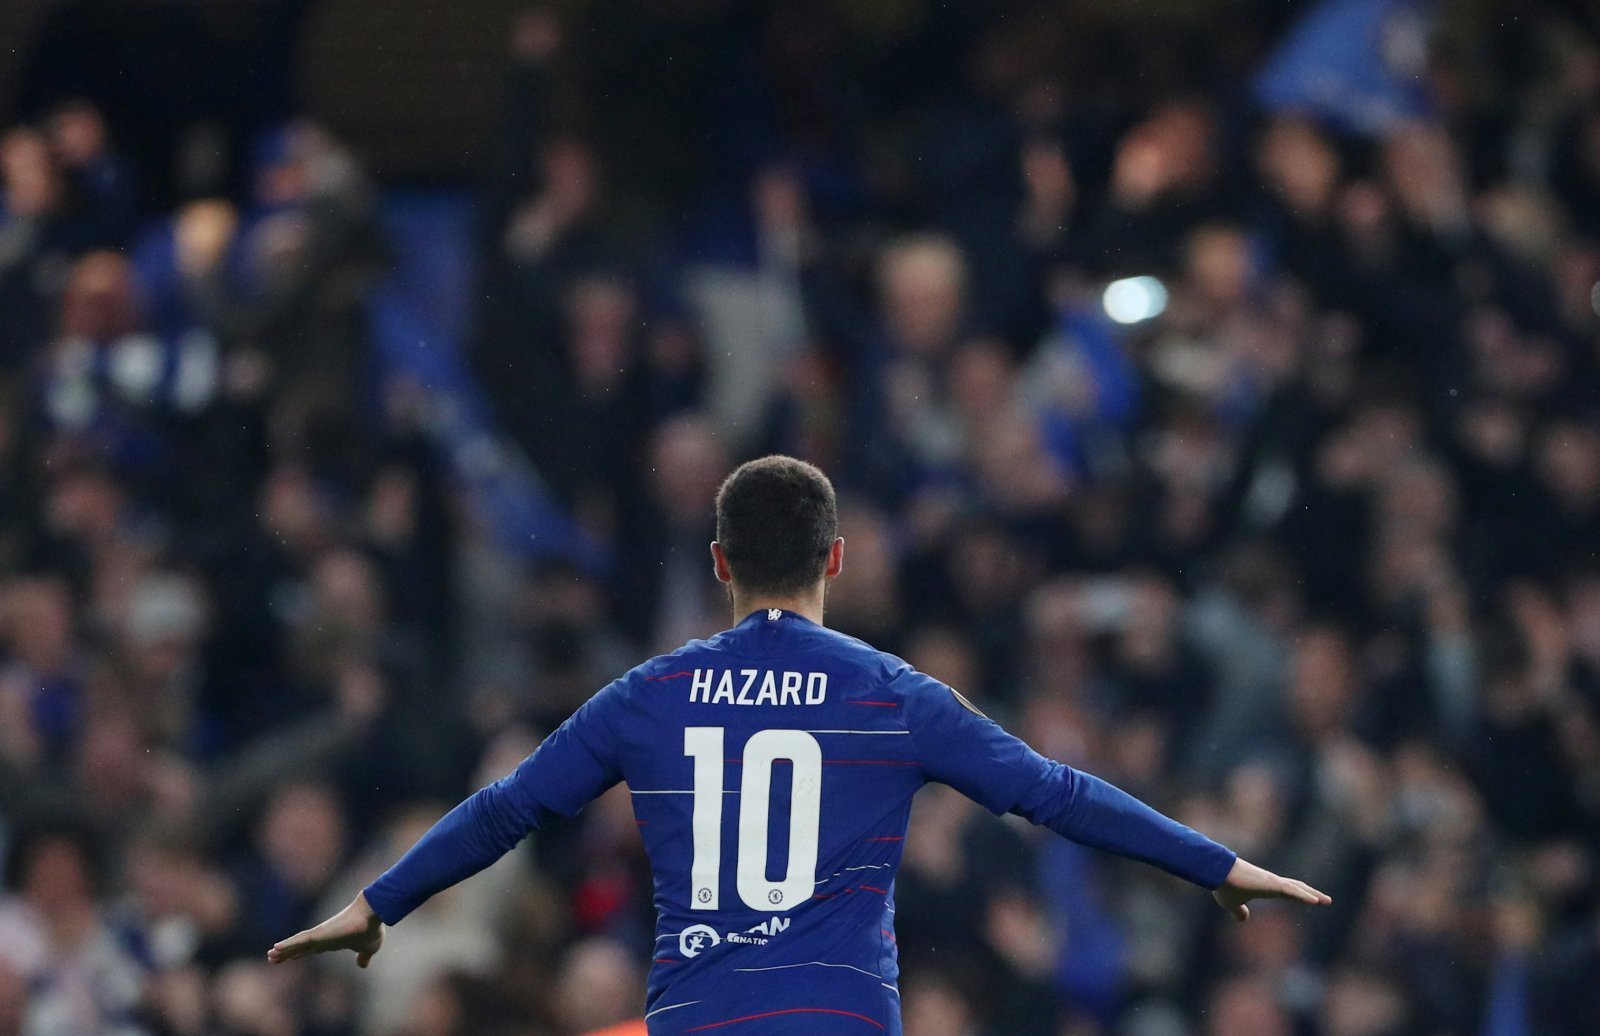 Chelsea: Abramovich has no option but to be patient with Lampard following Hazard exit